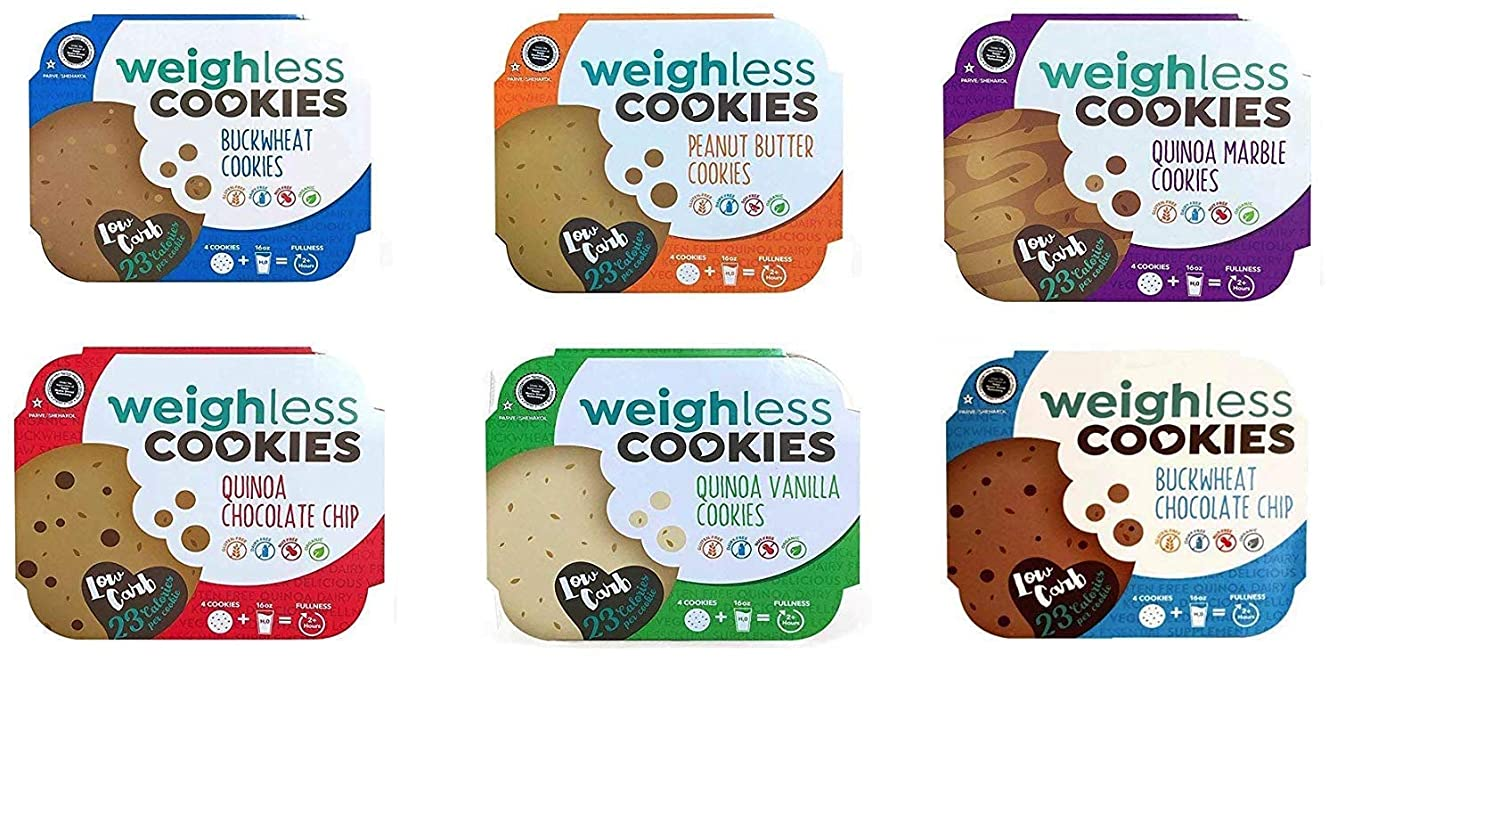 Weighless Cookies Gluten Free Low Carb Variety Pack 6 Flavors